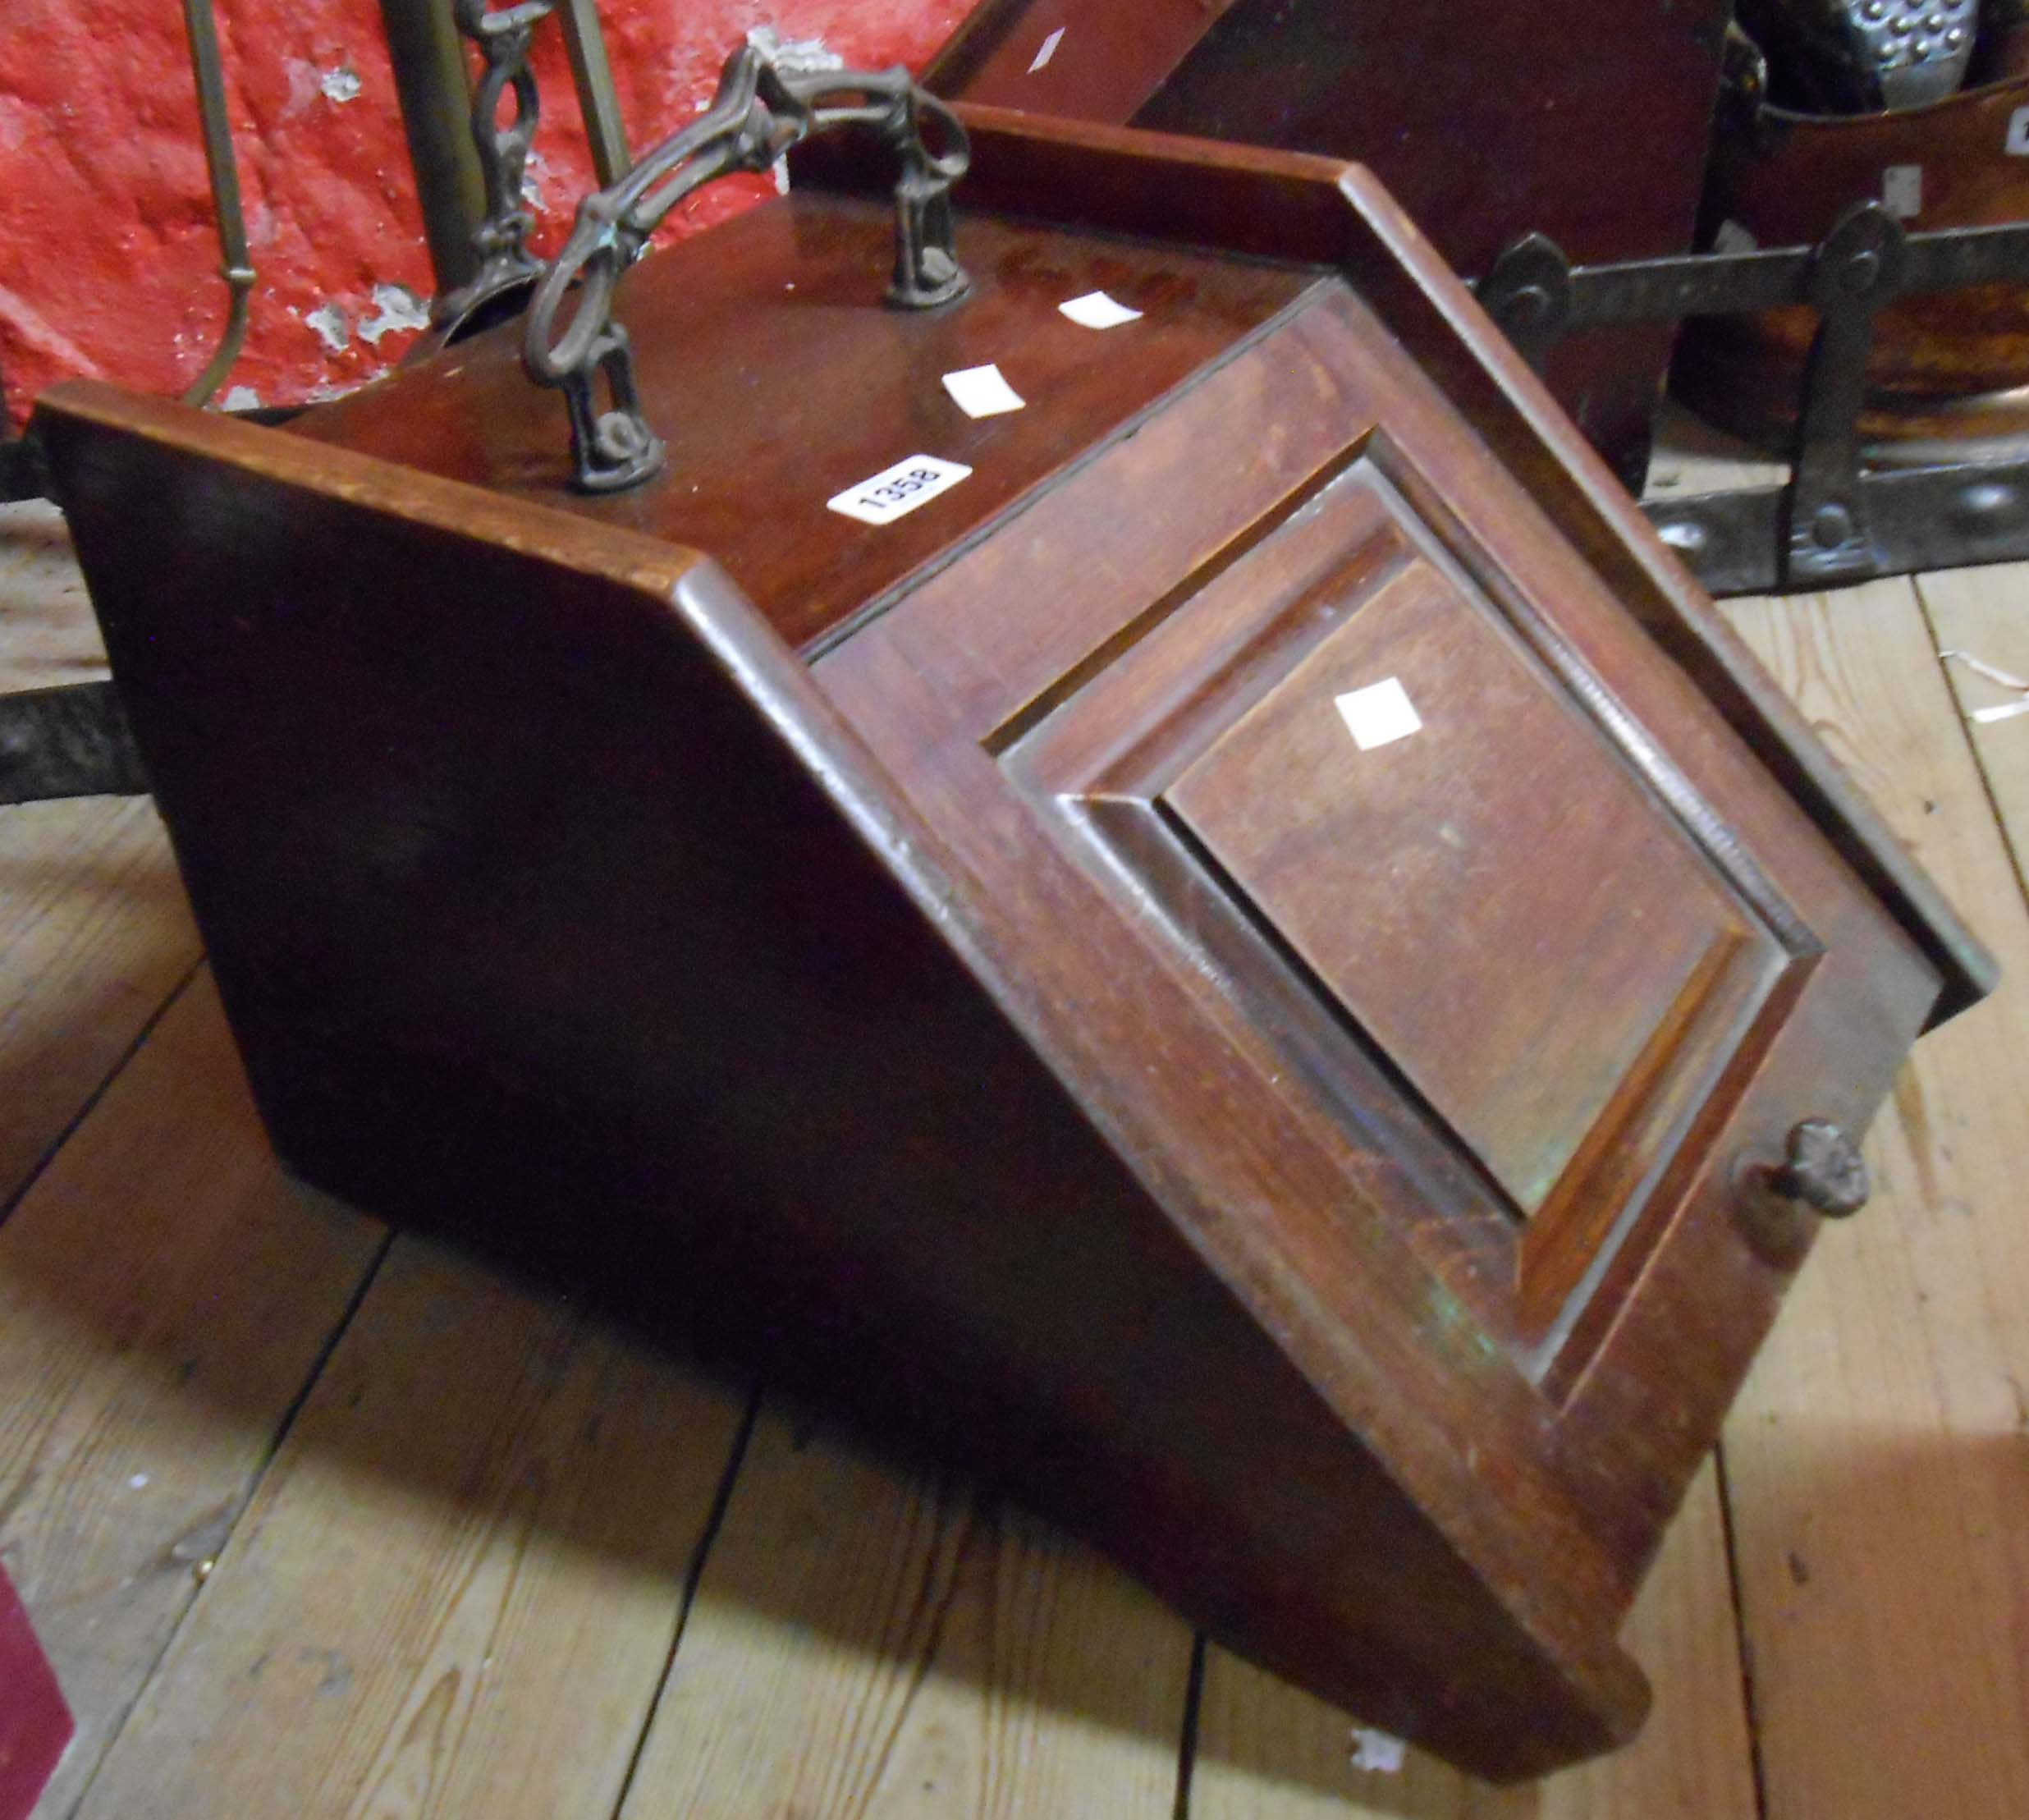 A wooden coal box with decorative cast iron handle and shovel